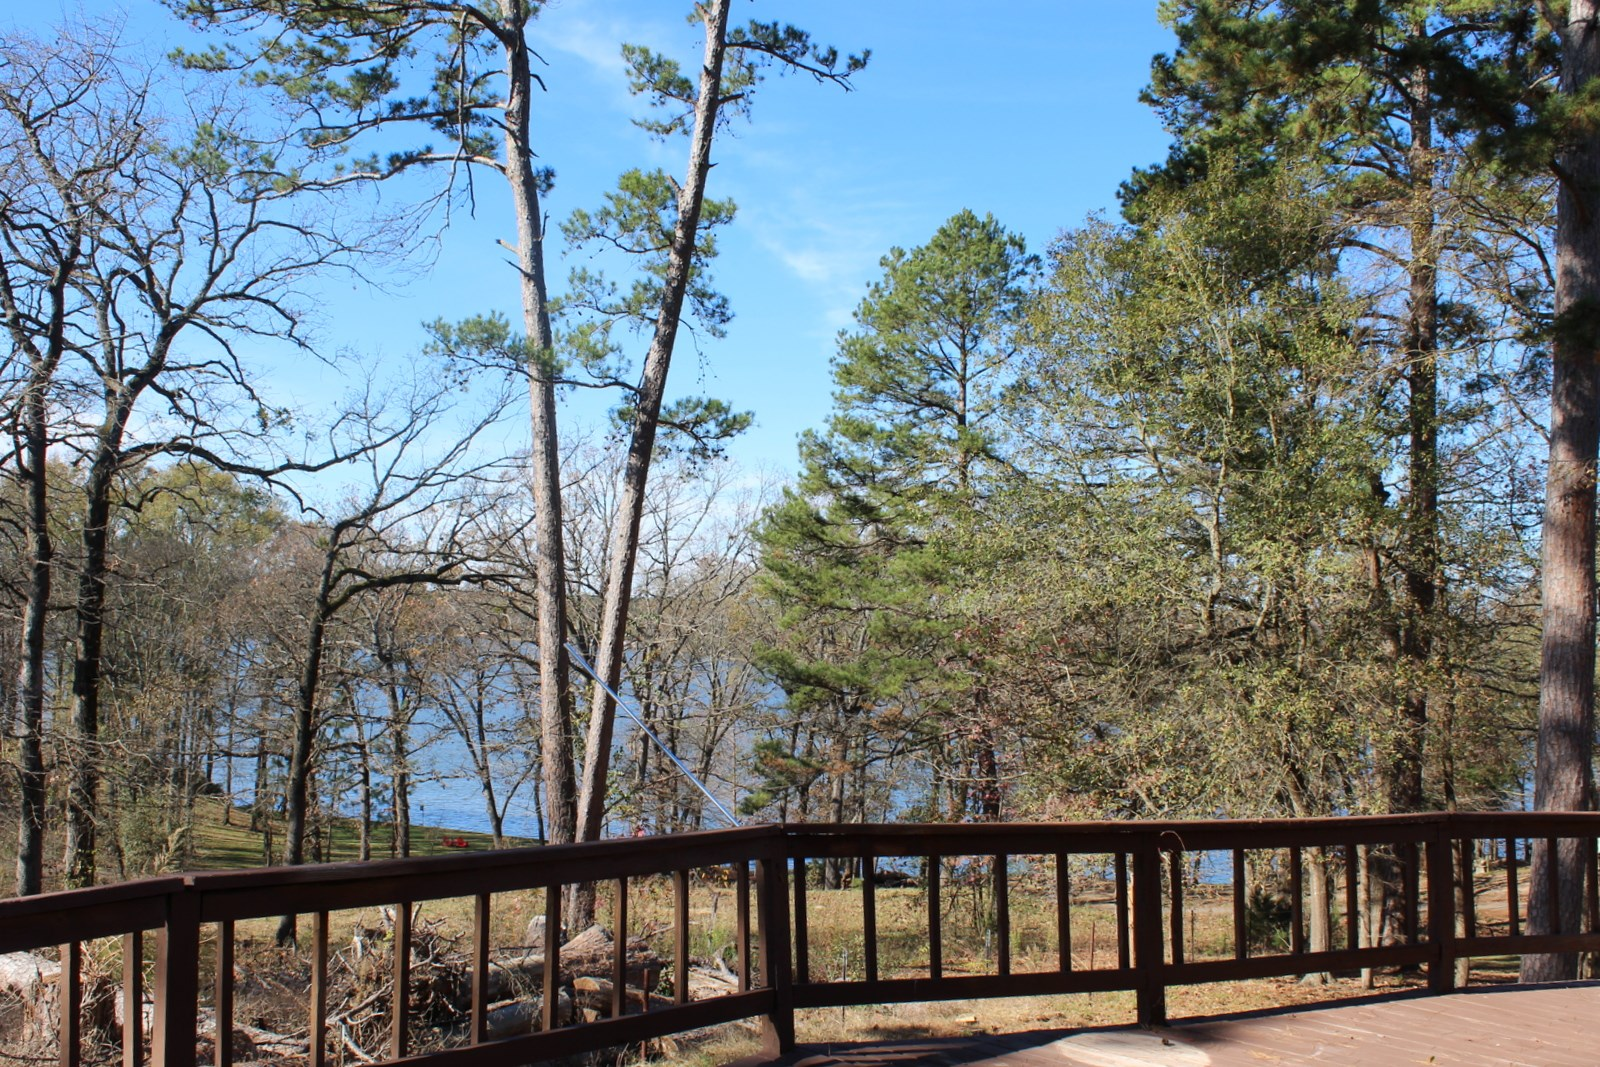 WATER VIEW HOME - LAKE CYPRESS SPRINGS - FRANKIN COUNTY TX